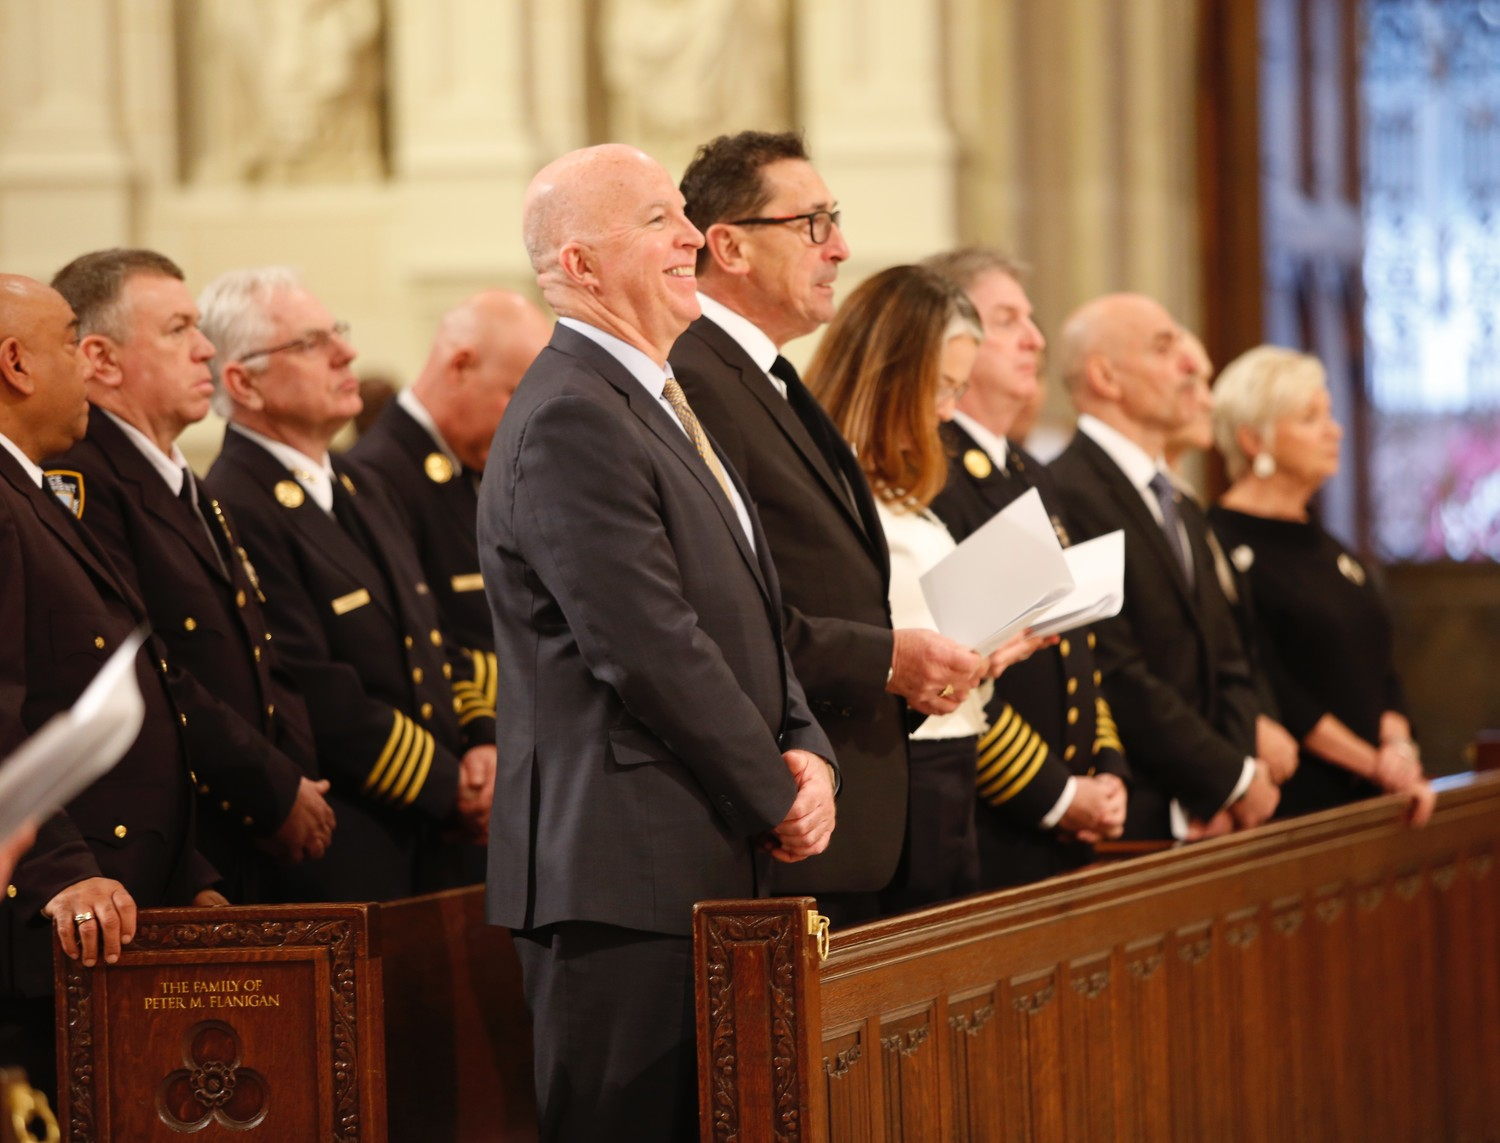 NYPD Commissioner James P. O'Neill and FDNY Commissioner Daniel A. Nigro were joined by members of their departments at the Memorial Mass for Rusty Staub at St. Patrick's Cathedral April 25.